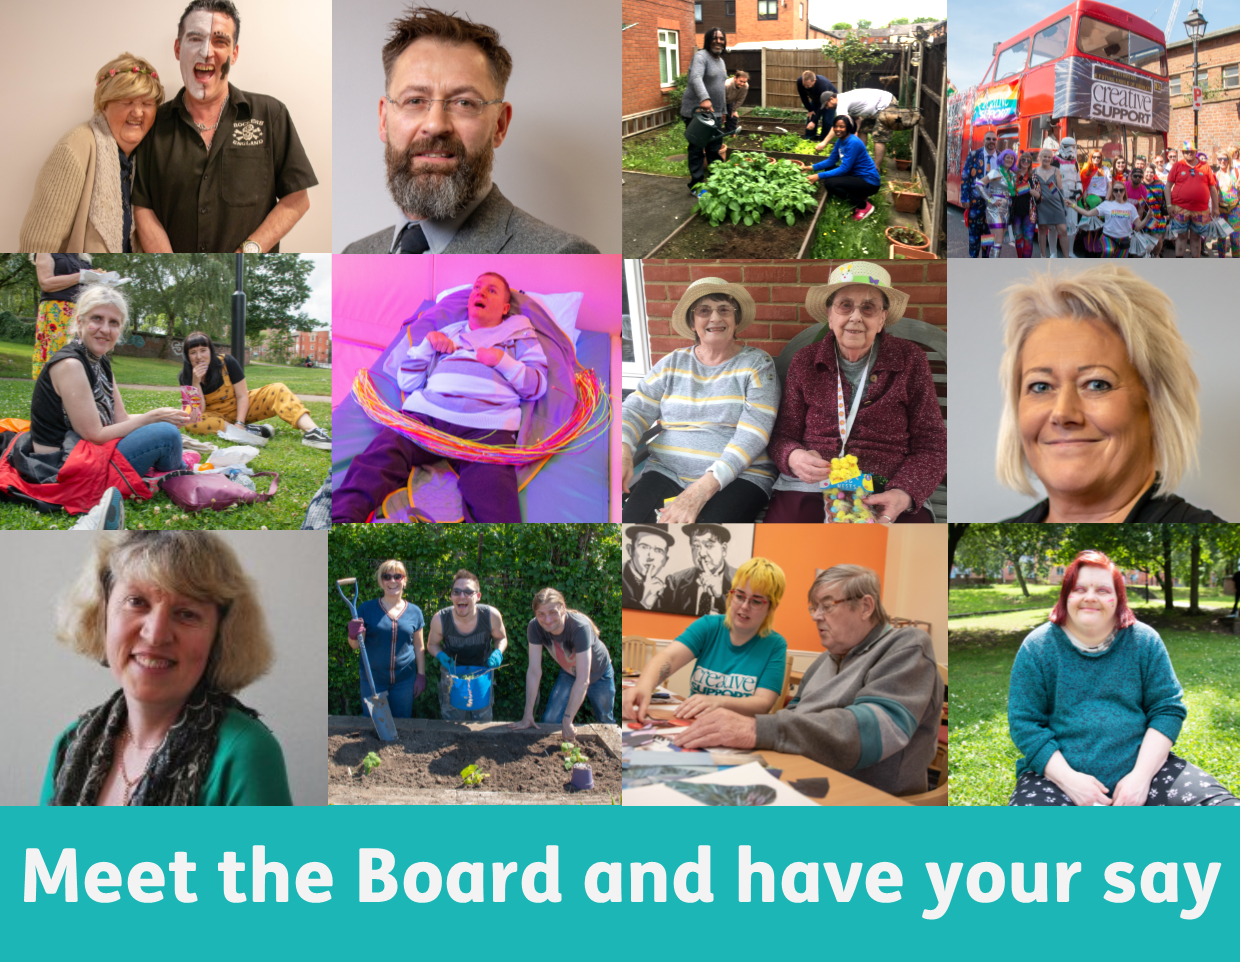 Meet the Board and have your say